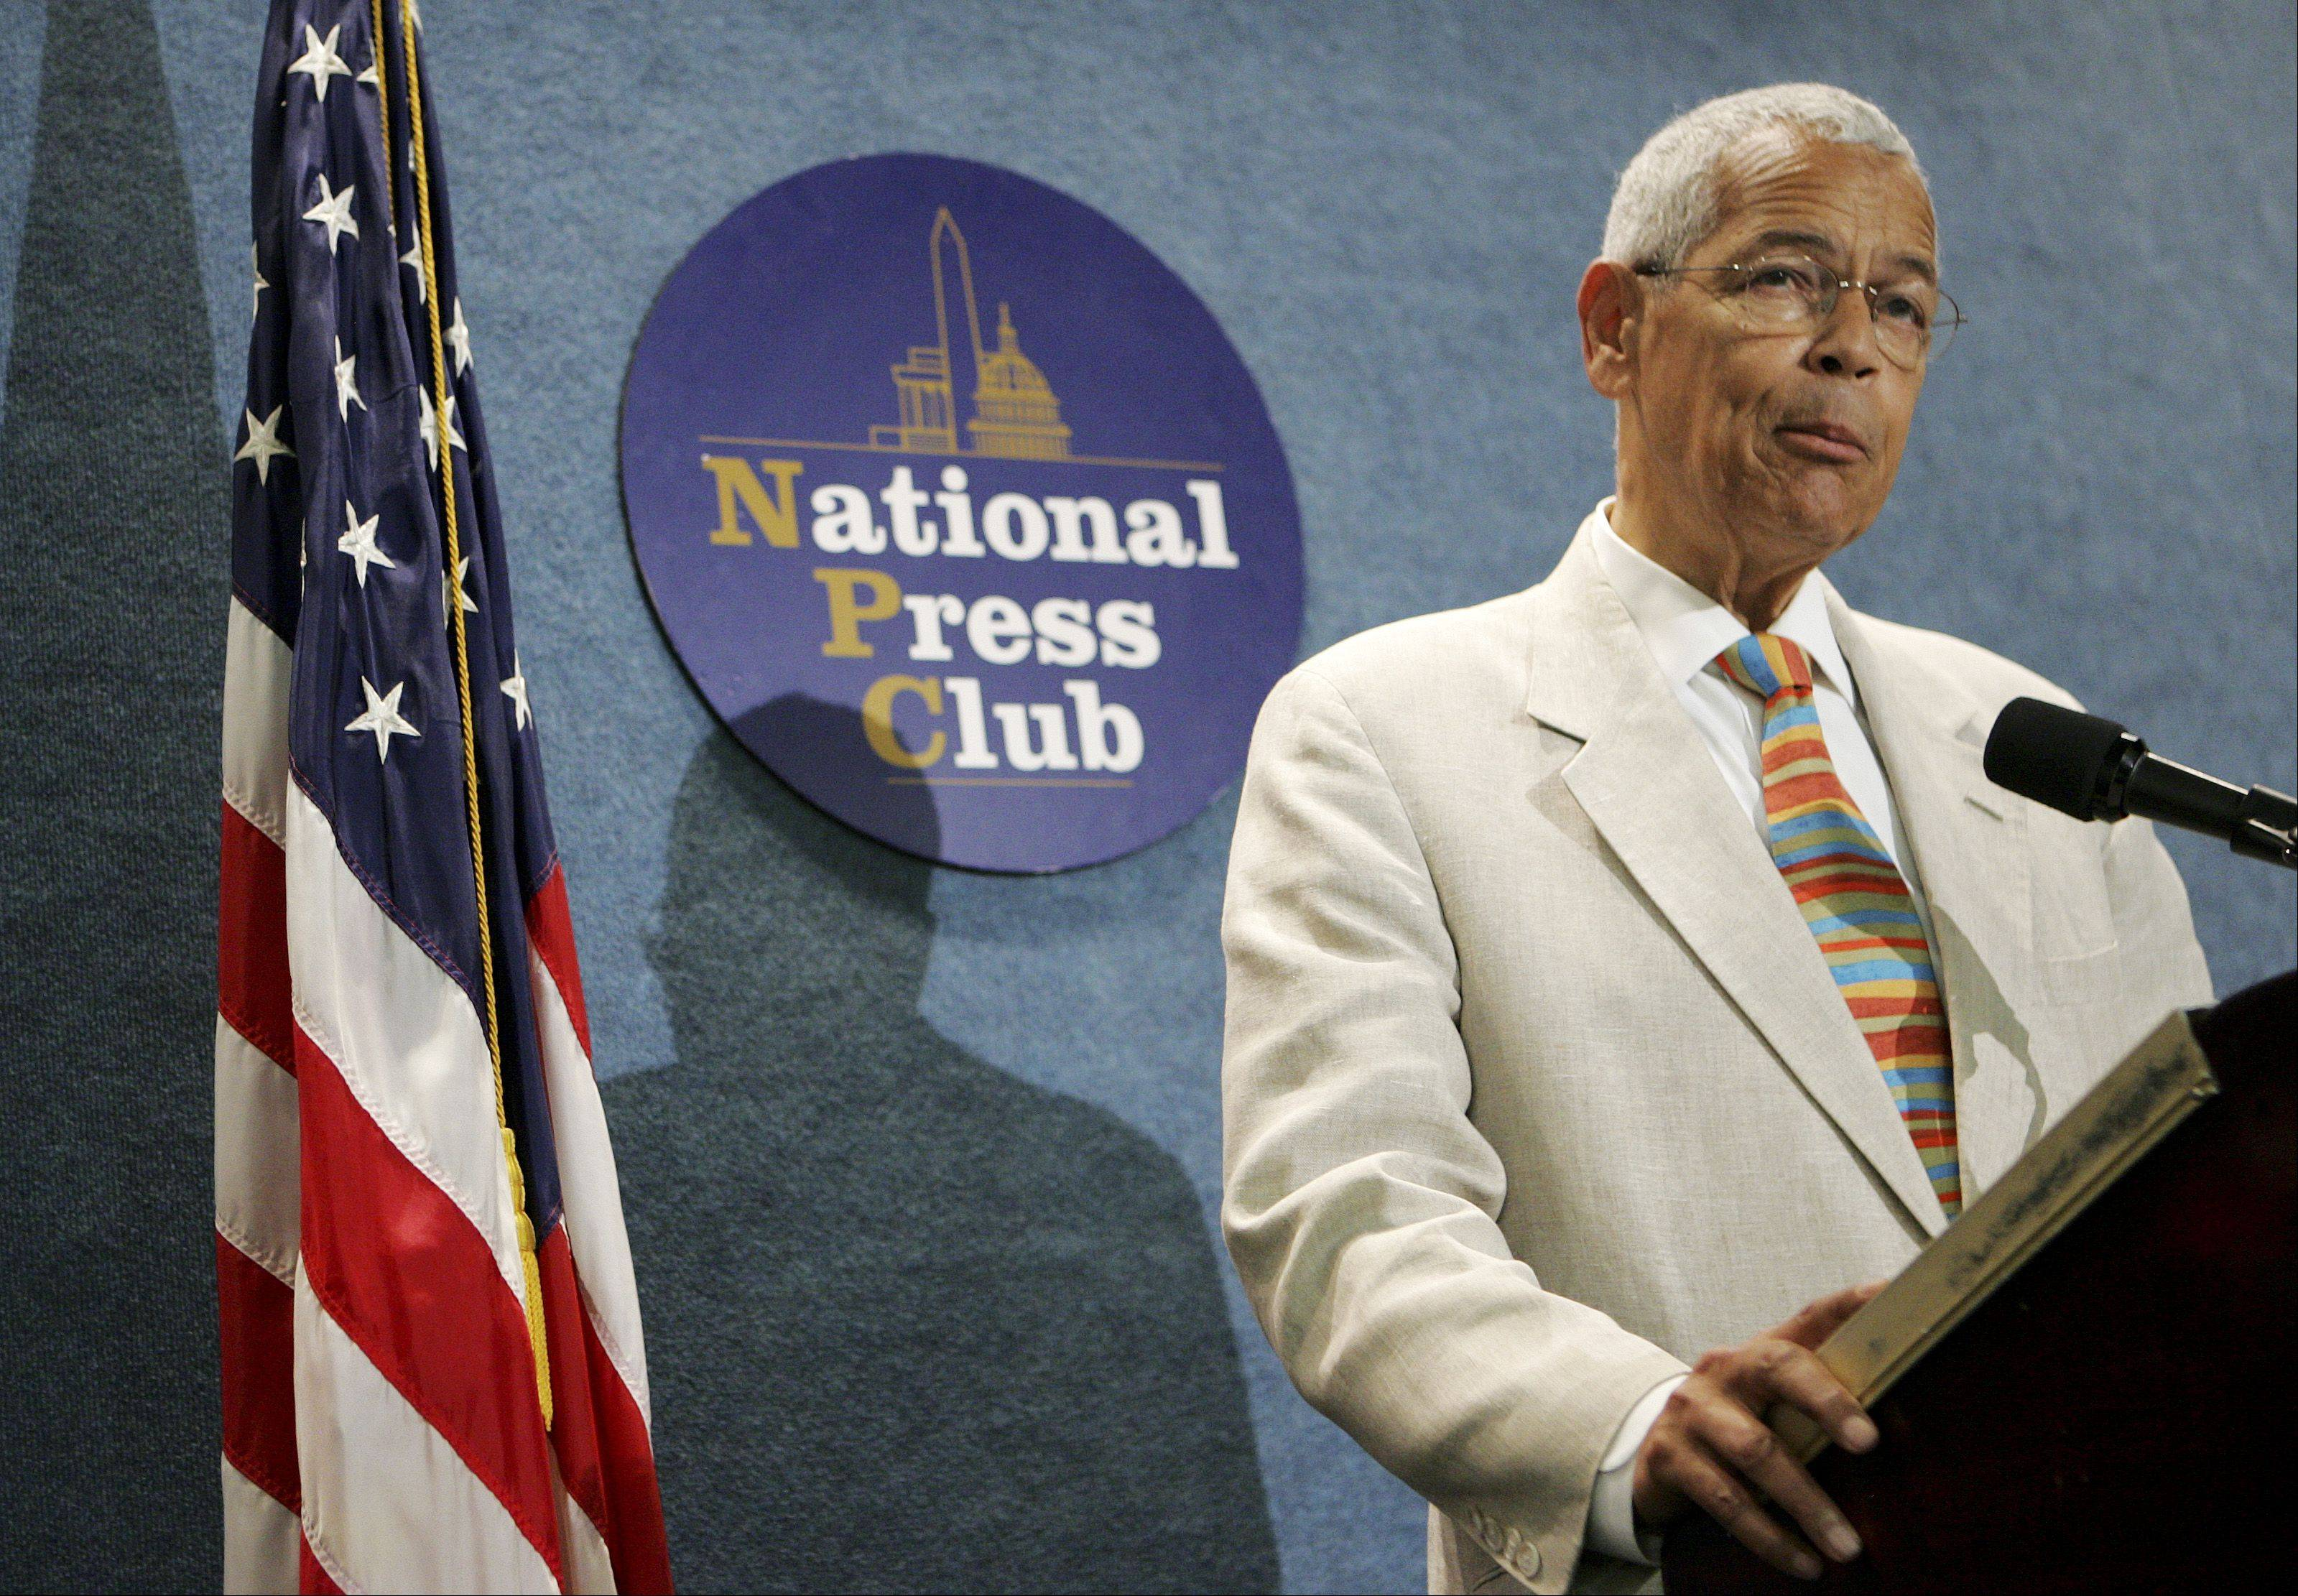 Civil Rights icon Julian Bond will be the special guest speaker at Aurora's annual tribute to Dr. Martin Luther King Jr. at 6:30 p.m. Monday, Jan. 20, in the West Aurora High School auditorium.